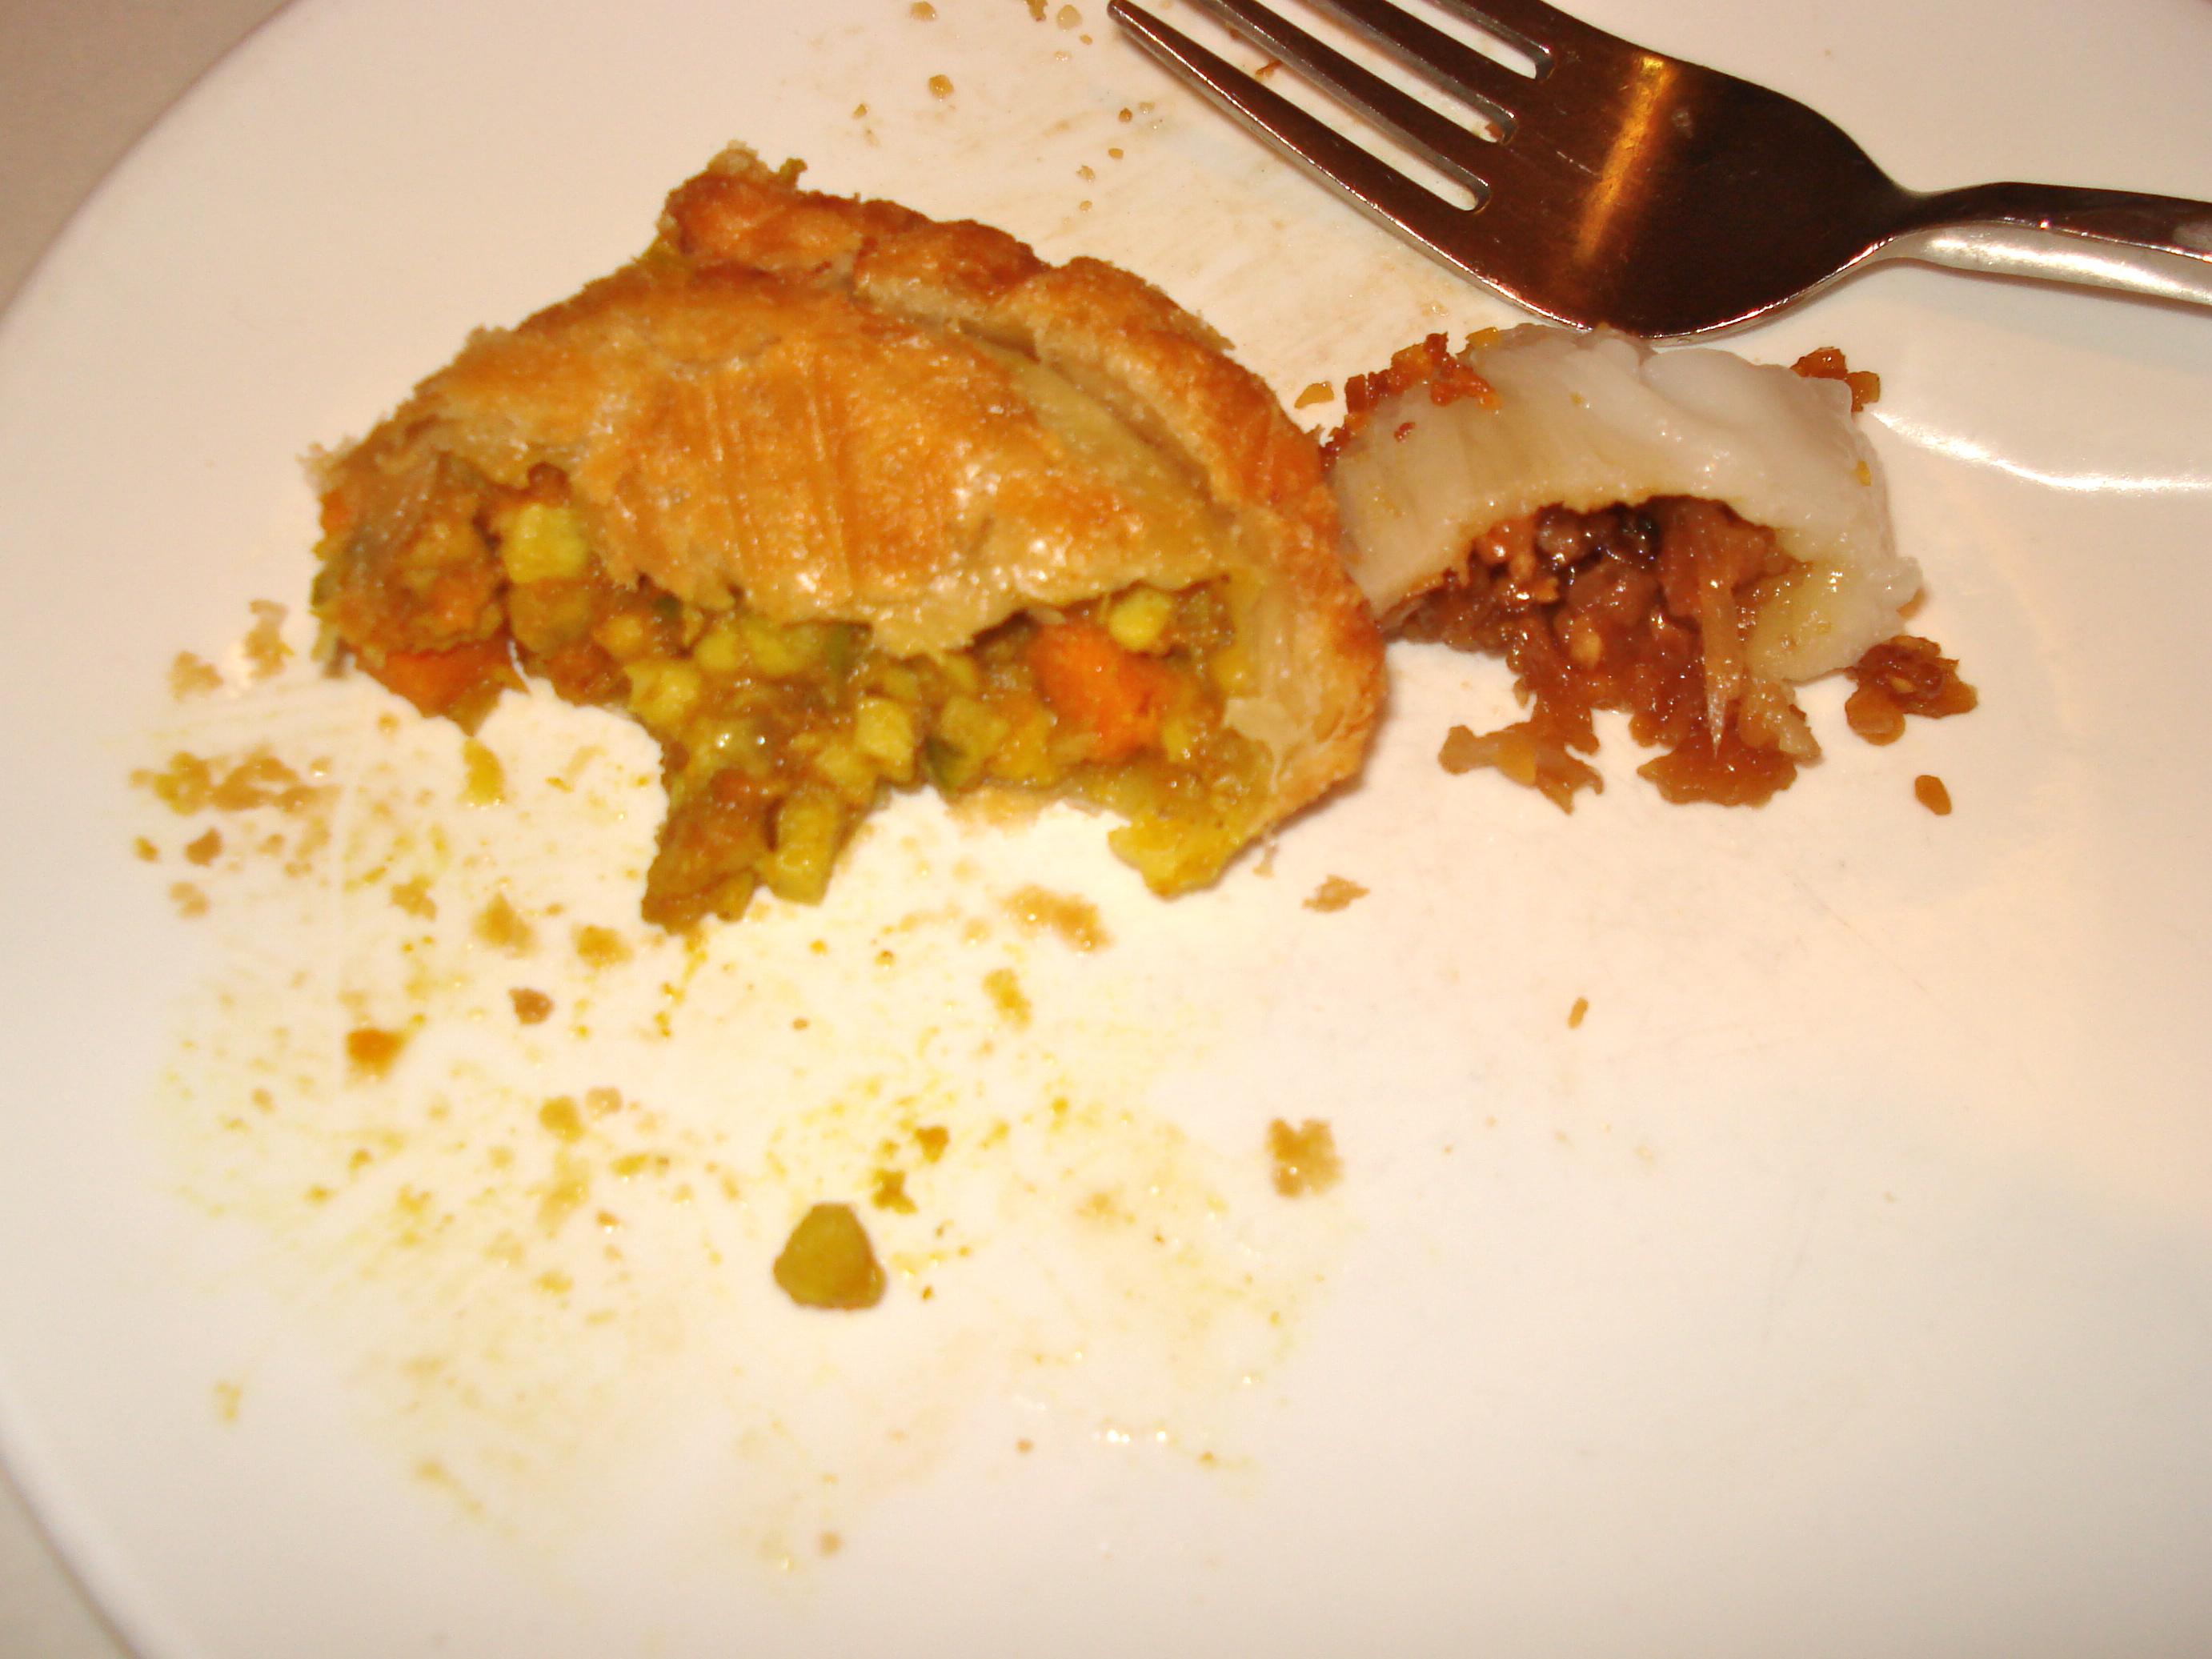 The inside of filled things: the curry puff had sweet potatoes and veggies and curry, the dumplings had minced veggies and peanuts.